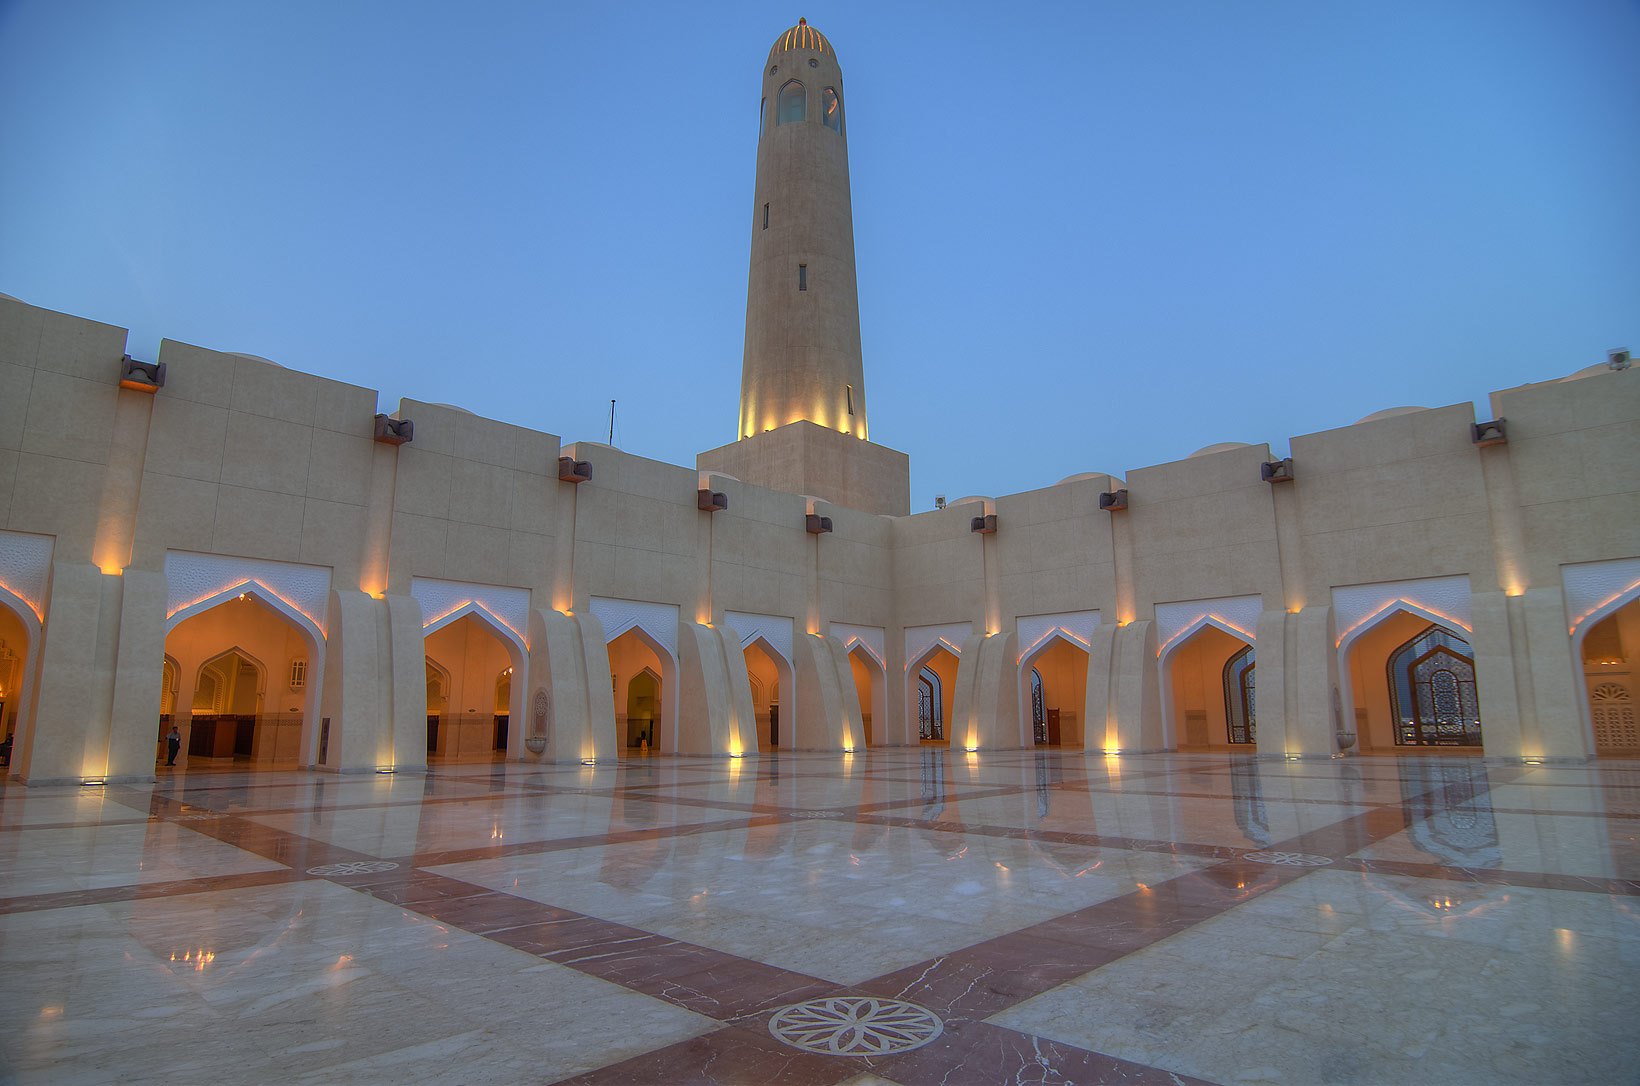 Evening light in courtyard (sahn) of State Mosque...Ibn Abdul Wahhab Mosque). Doha, Qatar